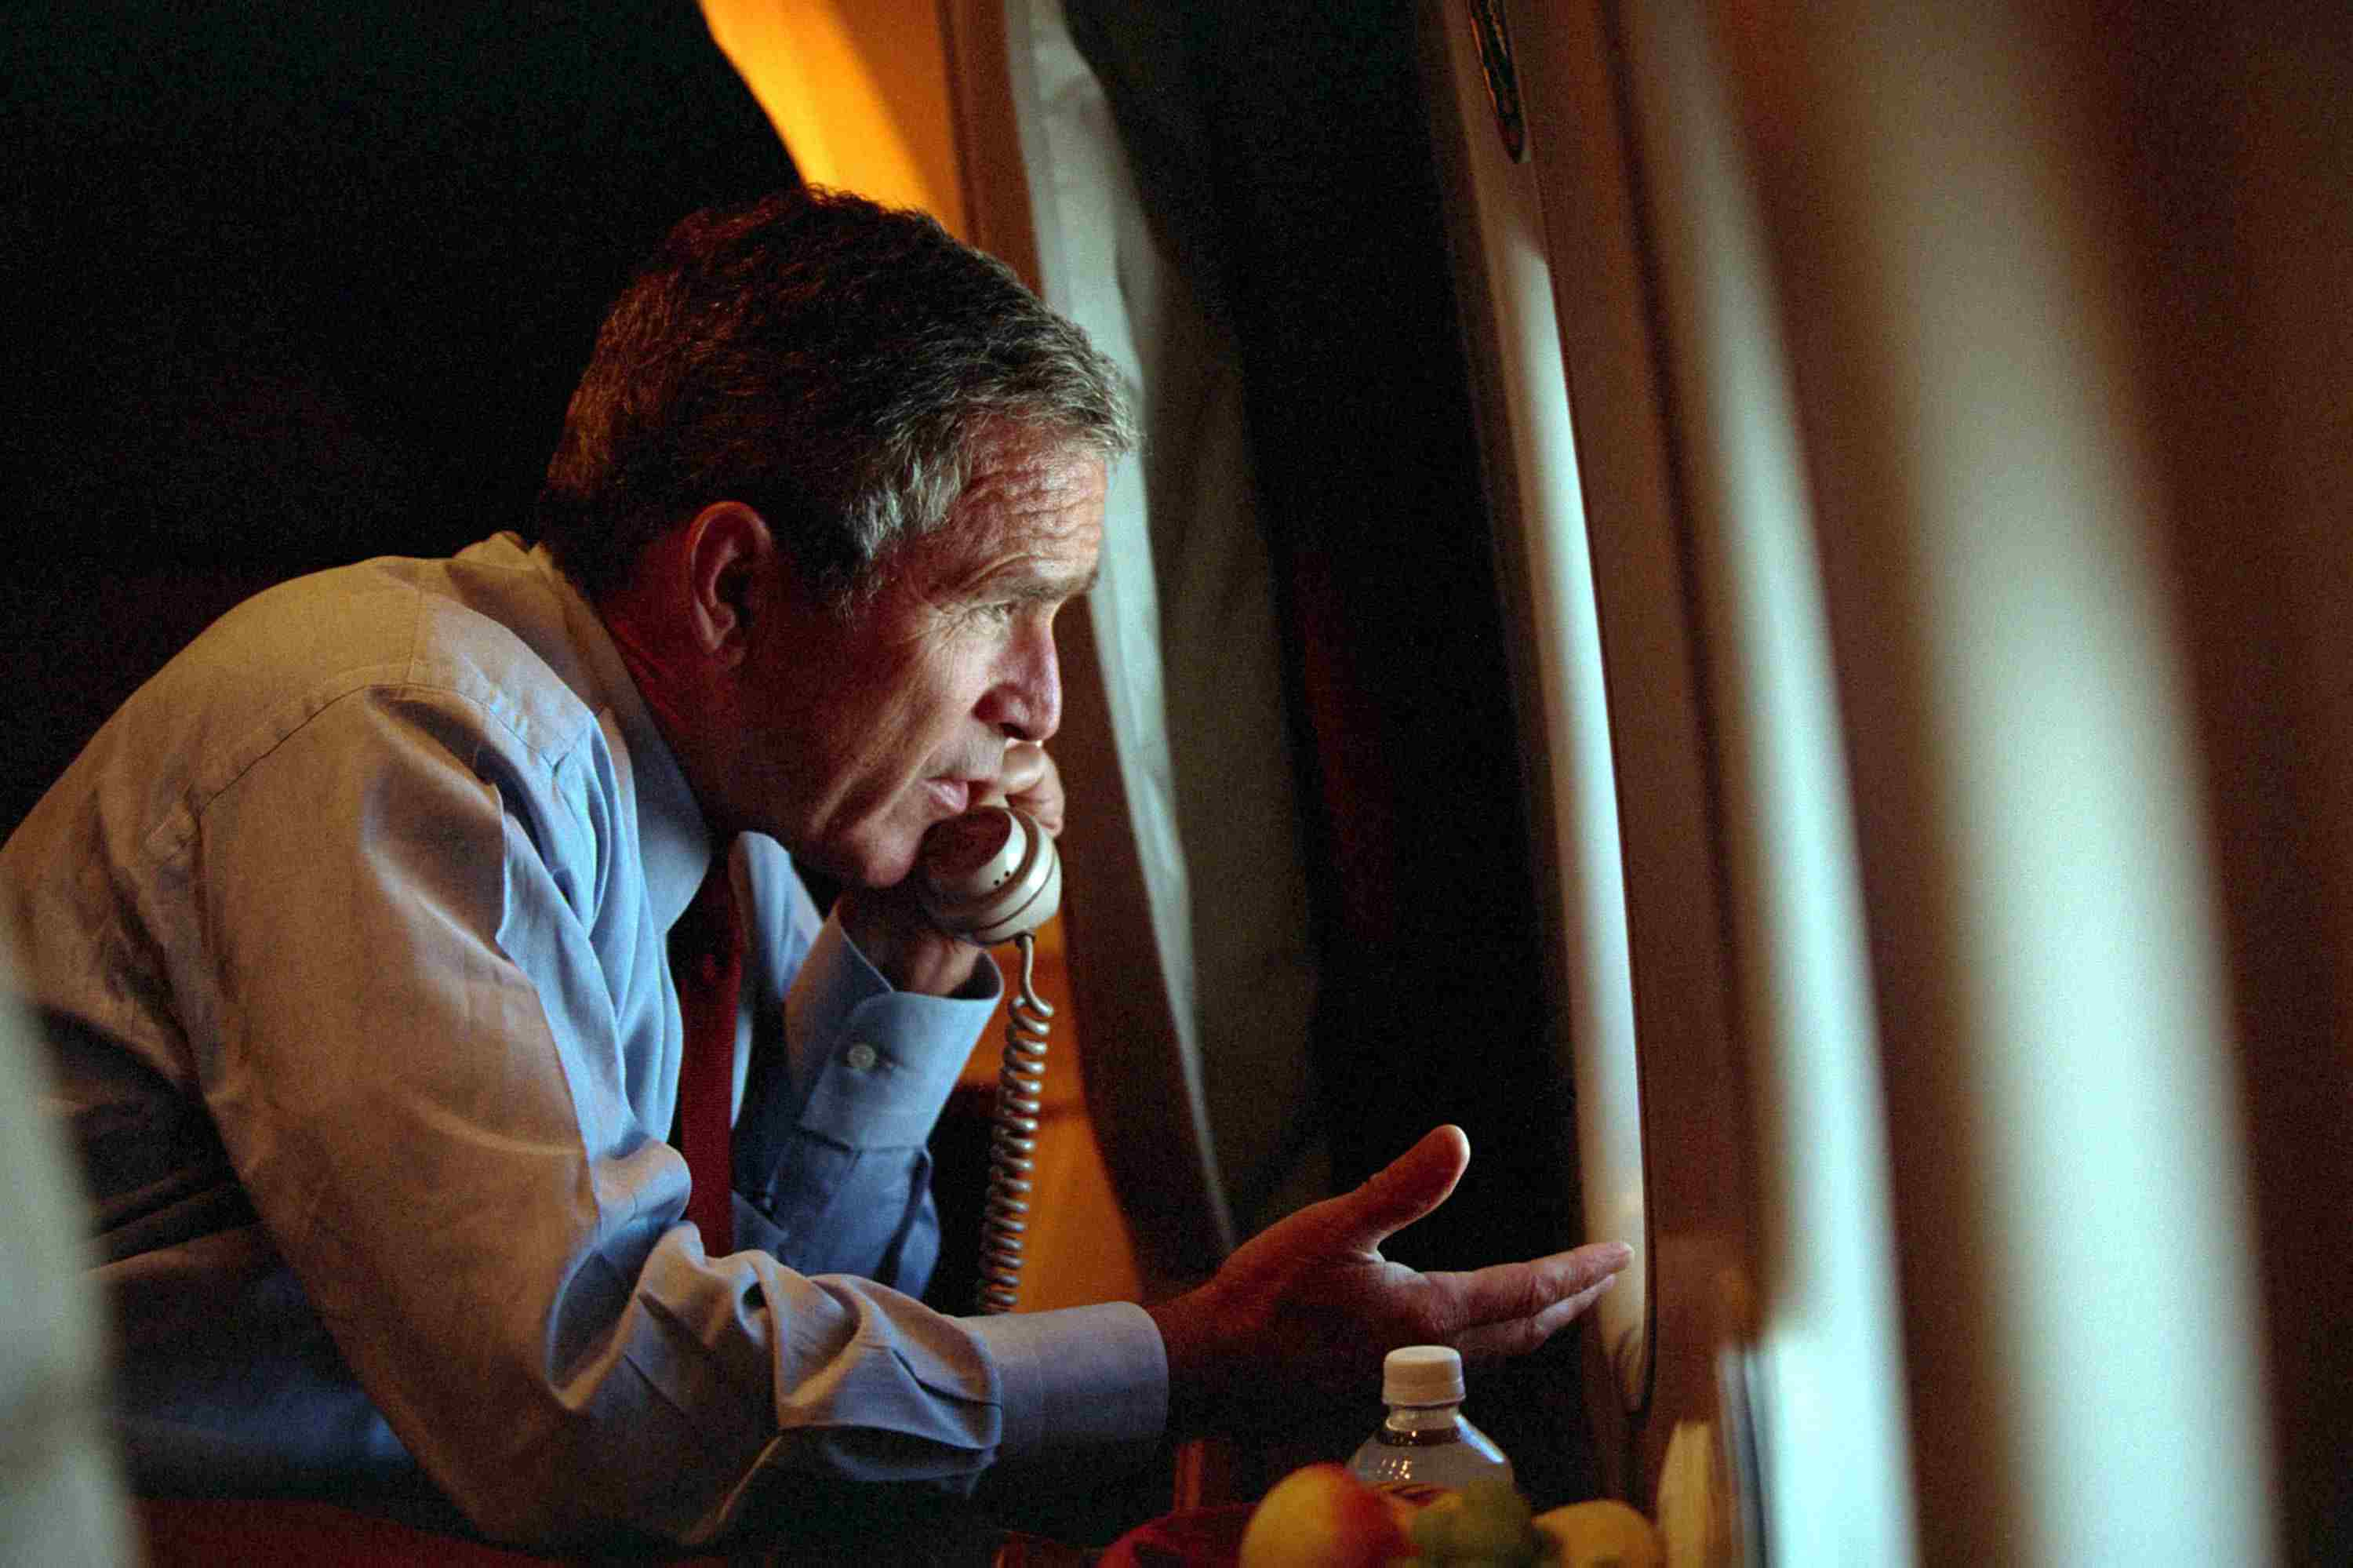 President Bush talking on the phone in Air Force One